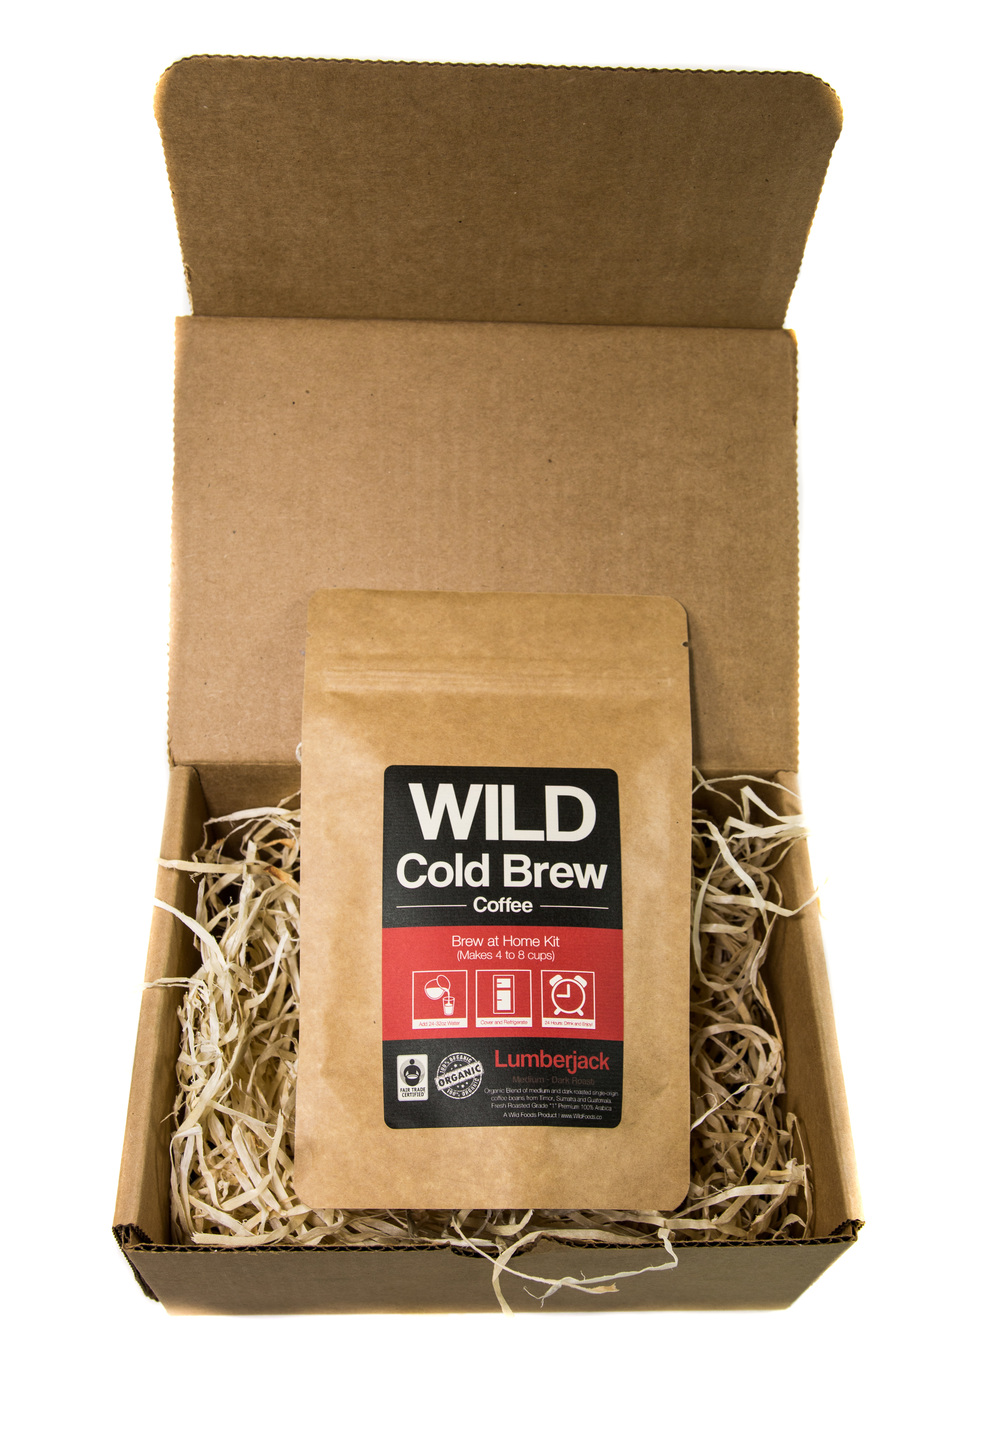 cold brew in a box